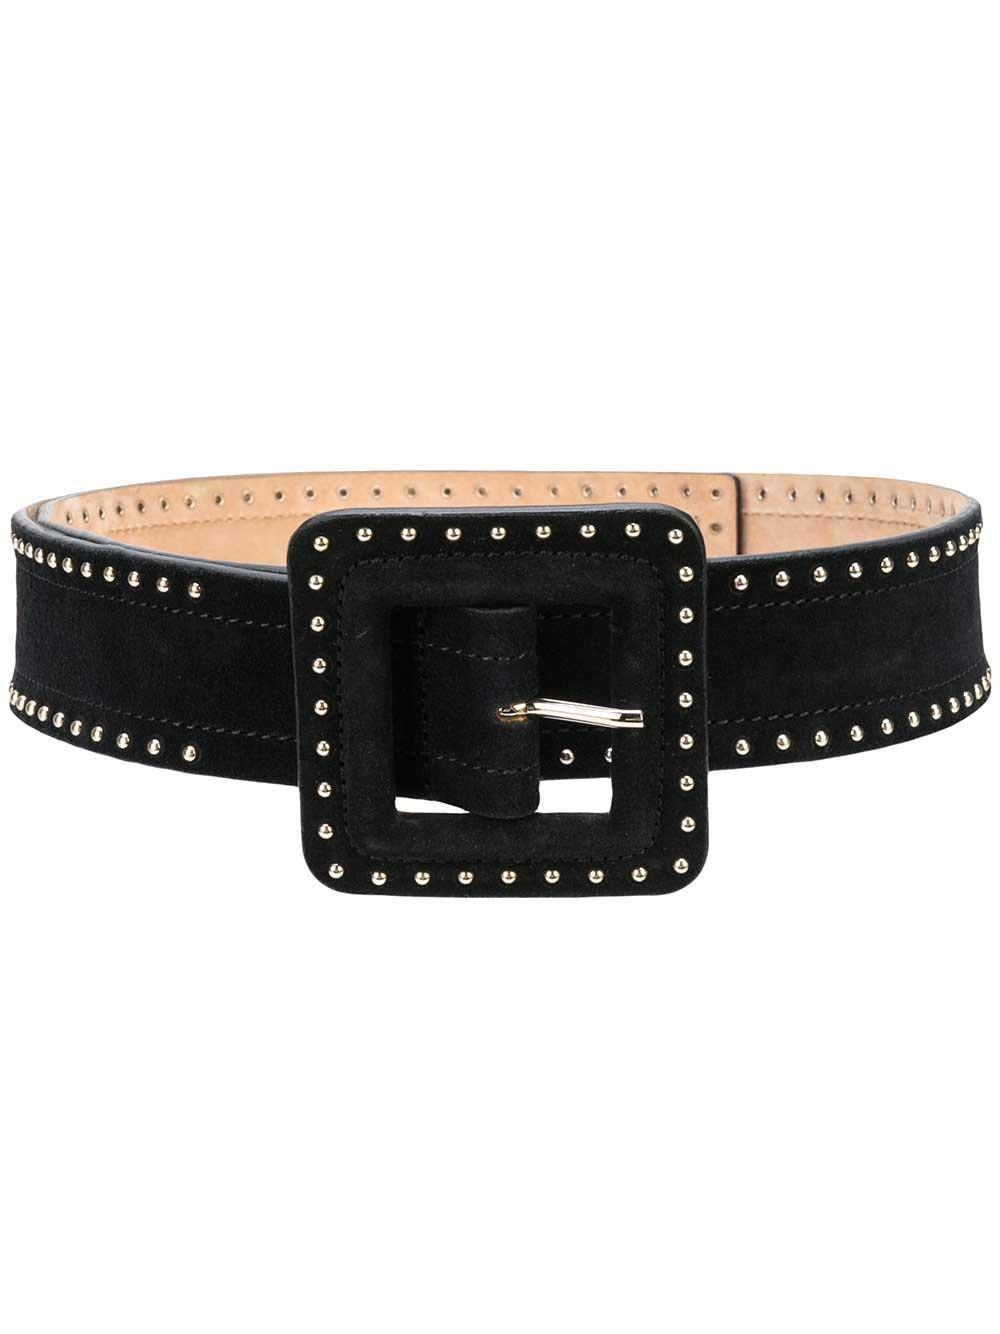 Aluma Suede Belt With Square Buckle Item # B191101FS